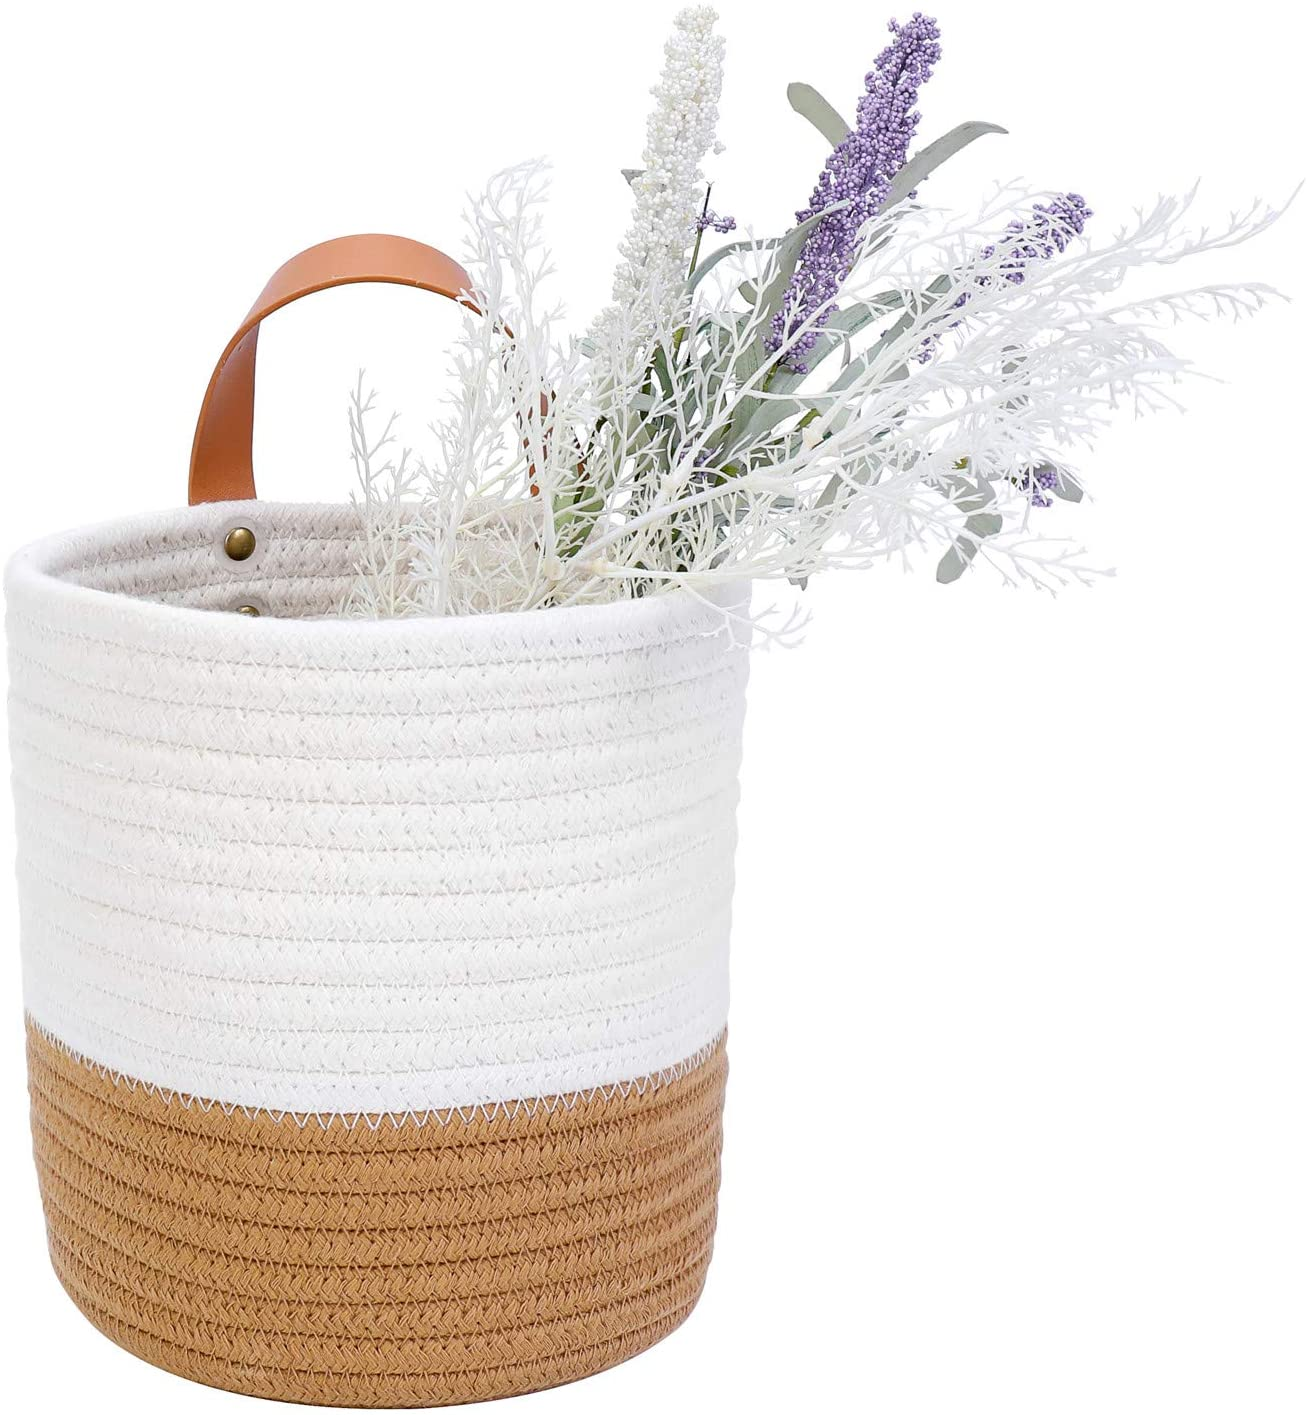 Rope Woven Baskets for Baby Nursery Kids Gift Wall Hanging Organizer Storage Baskets 2pack Jute Woven Hanging Baskets for Organizing Small Woven Baskets for Storage Hanging Basket Flower Plants